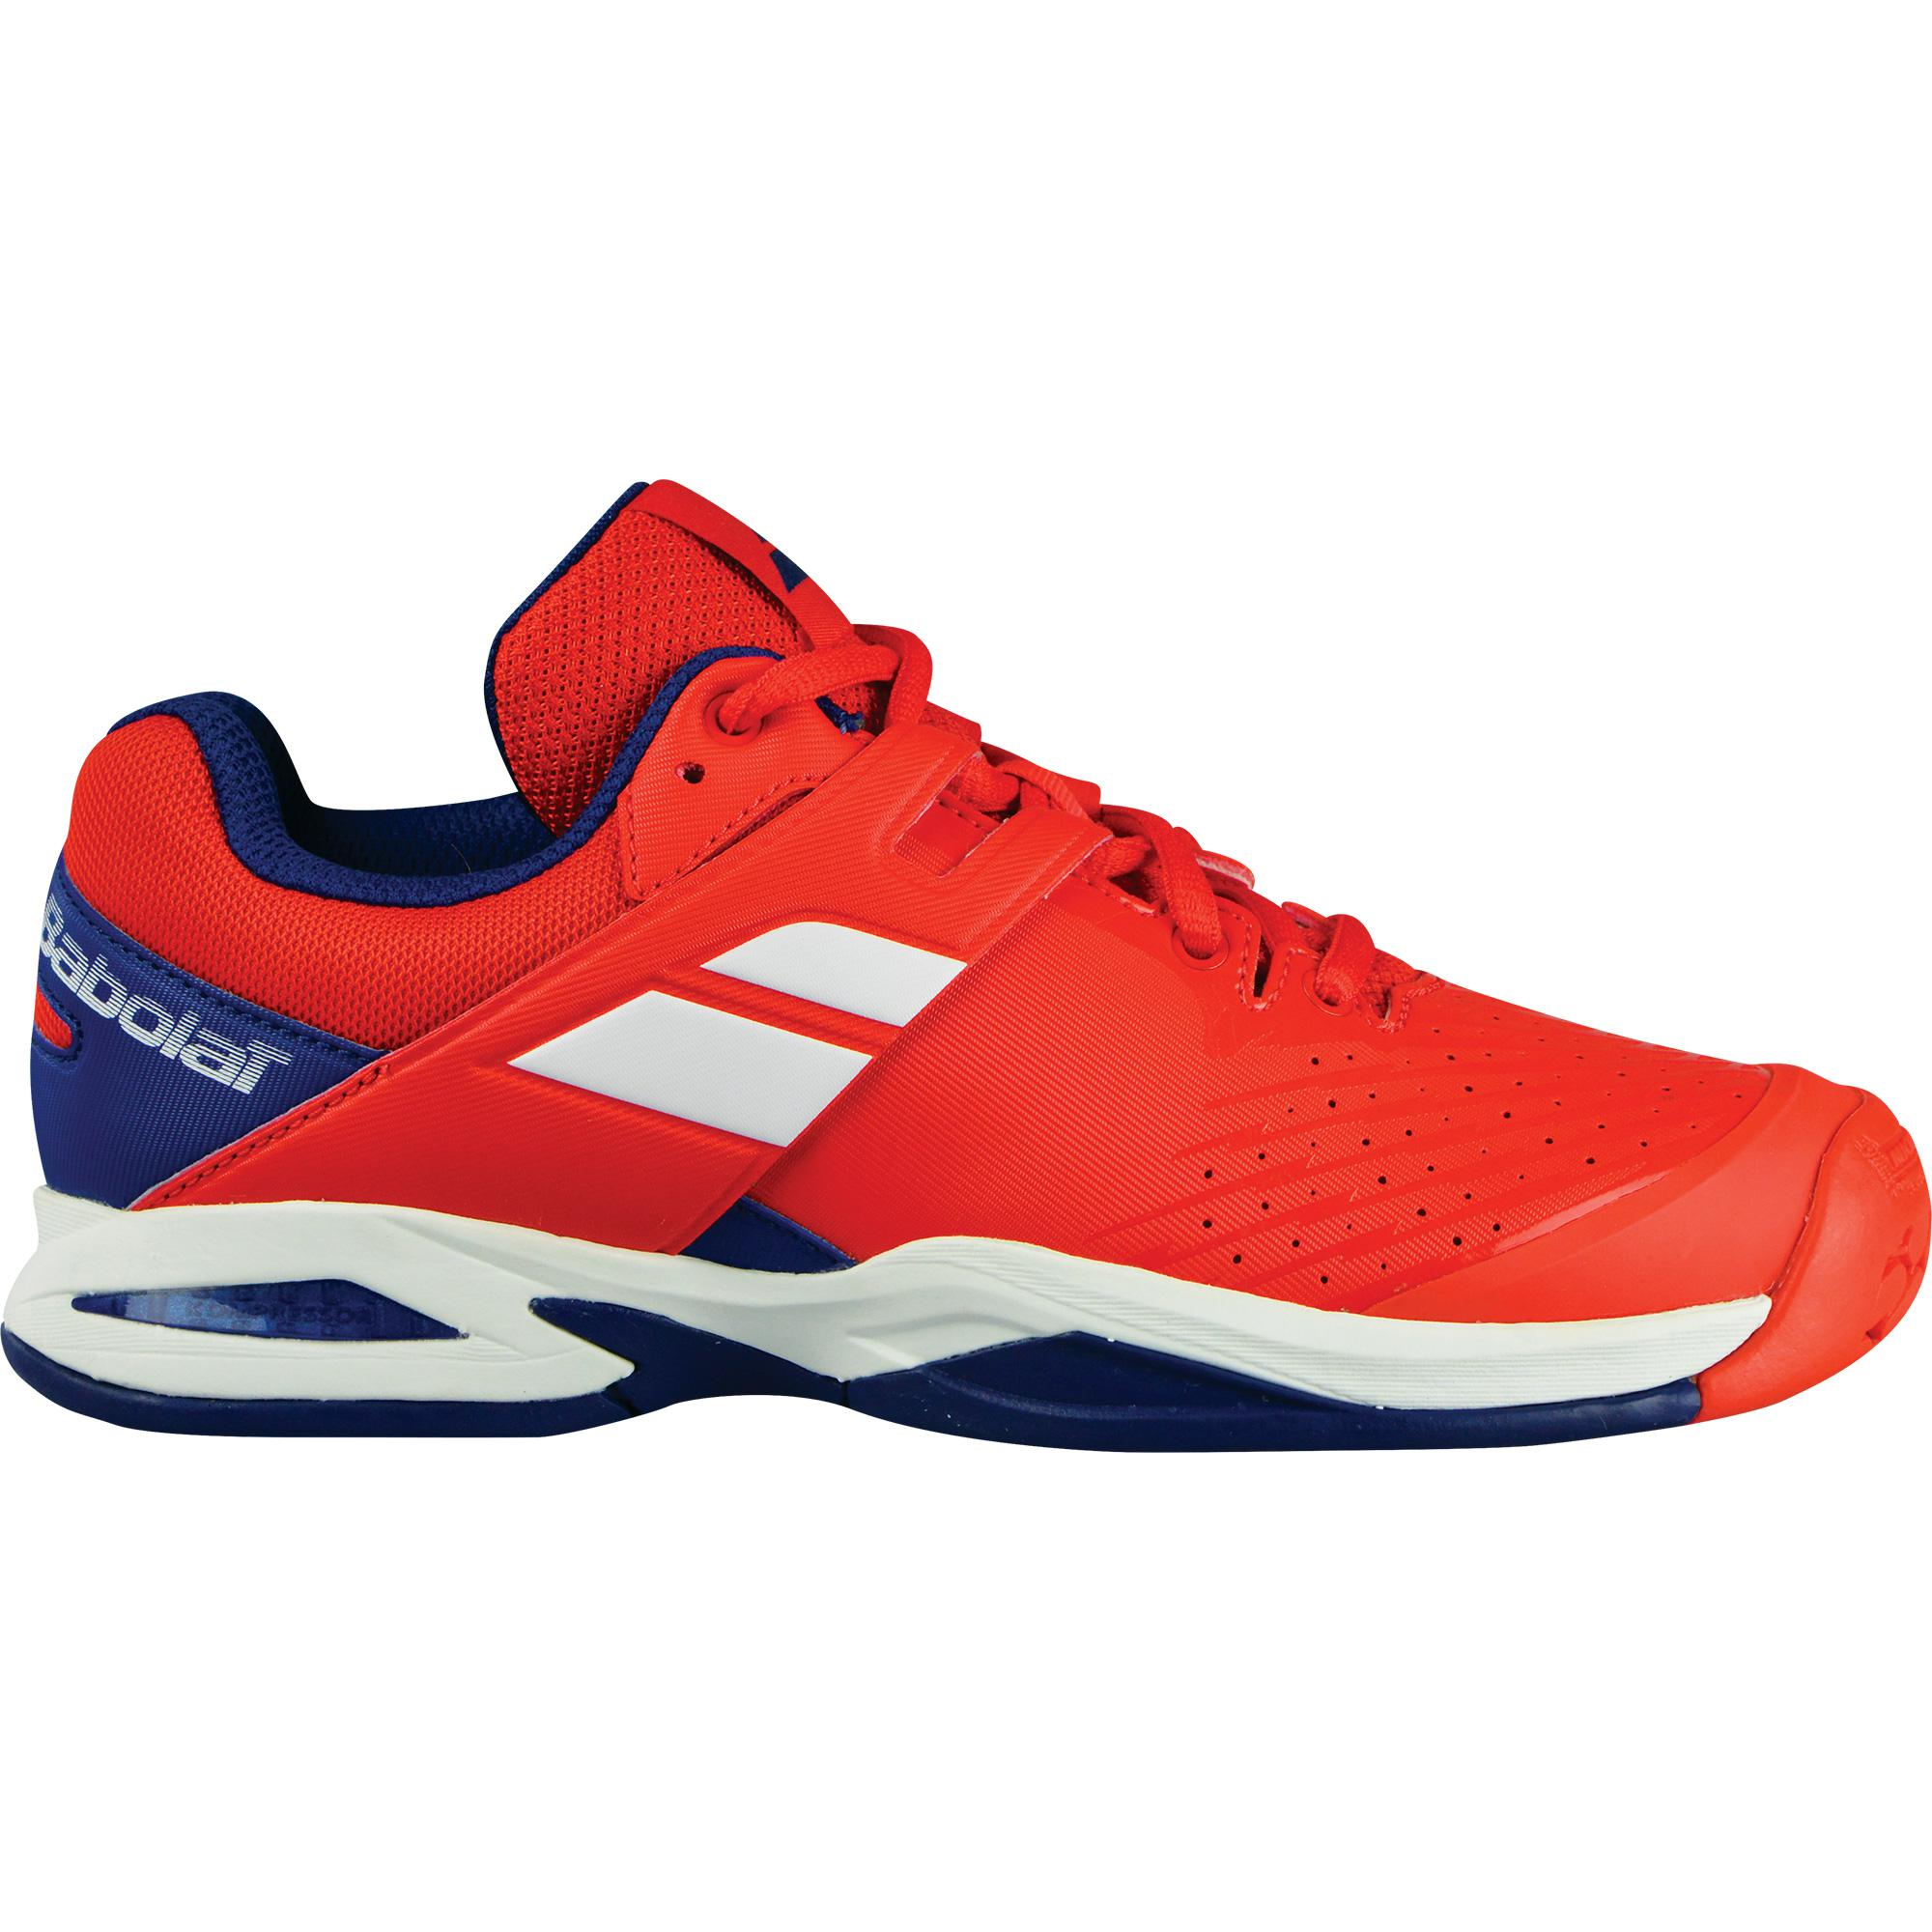 be498b00486 Babolat Kids Propulse Tennis Shoes - Bright Red Estate Blue